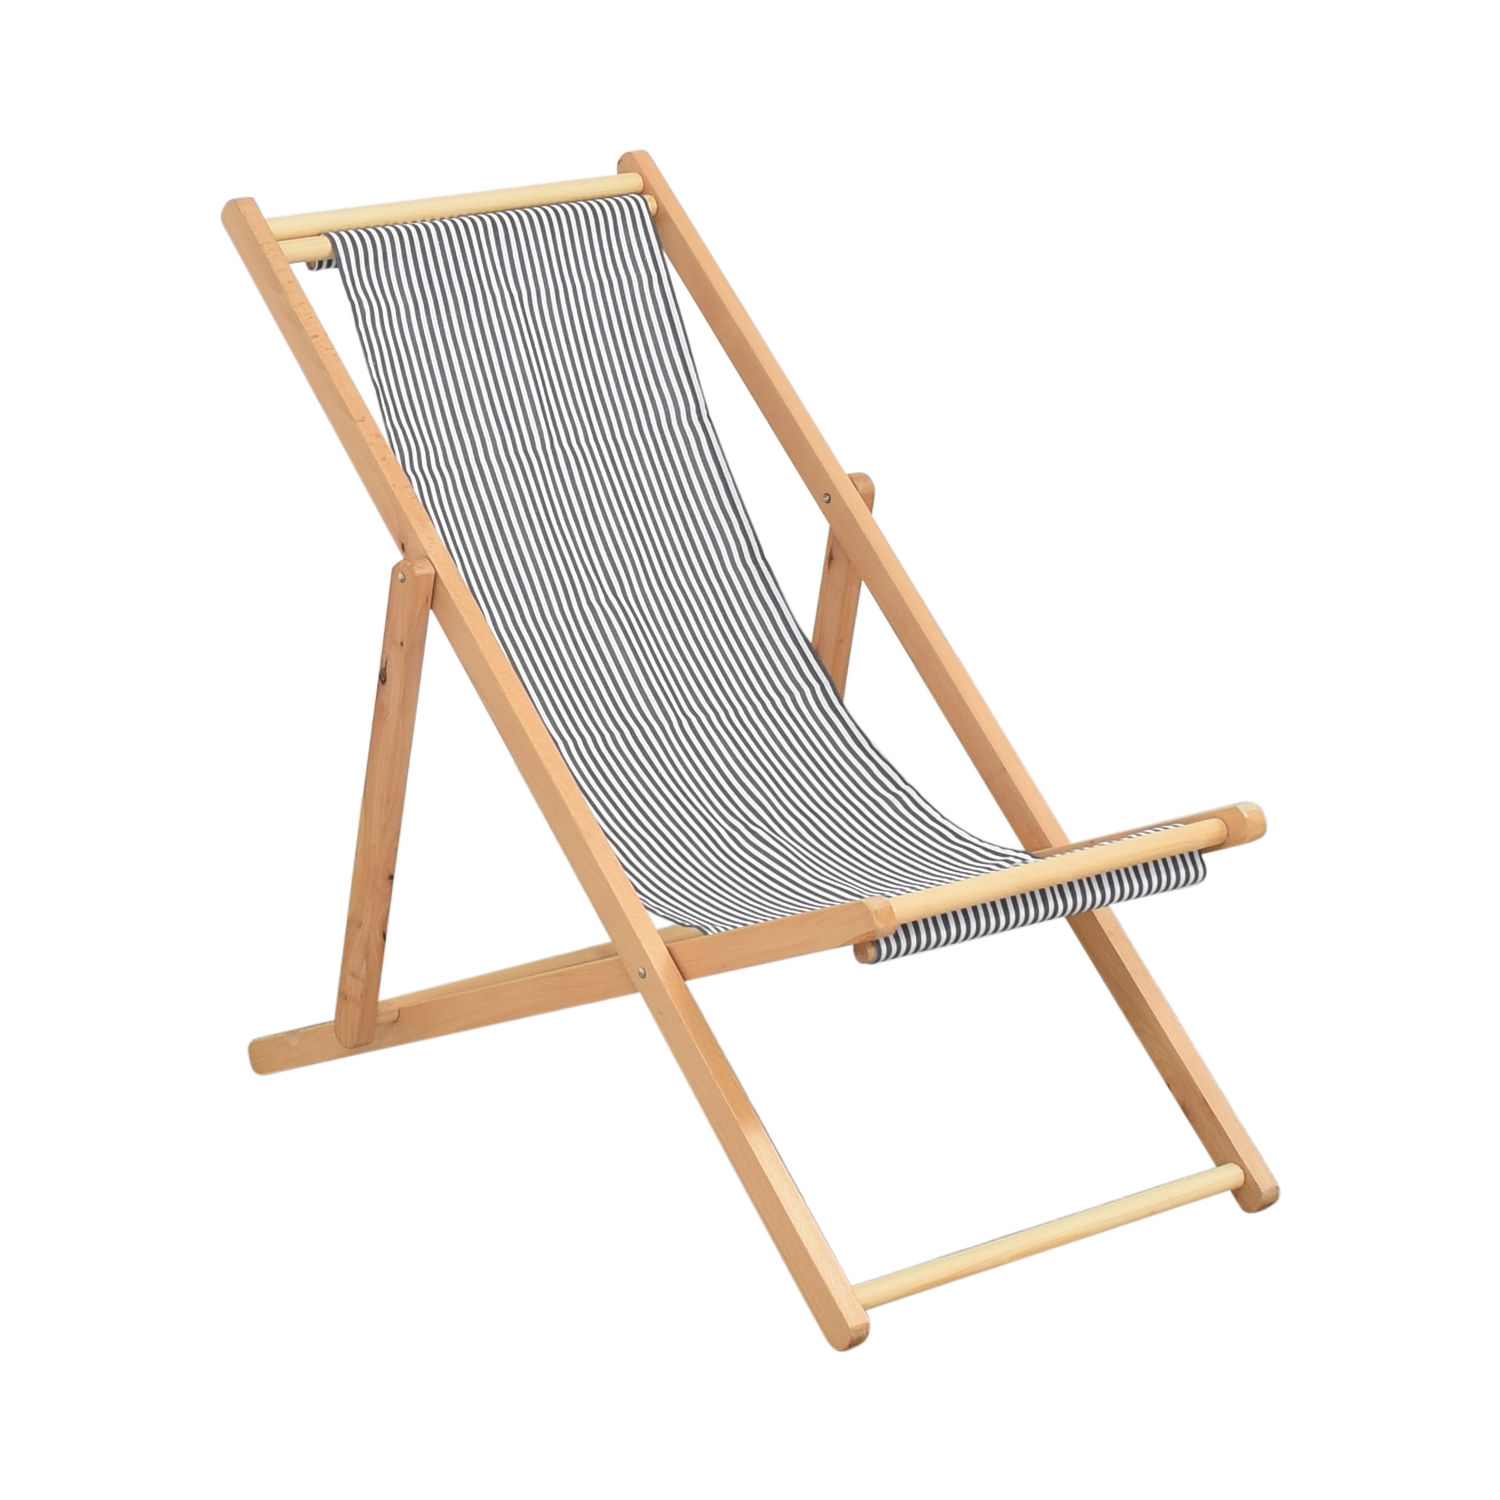 The Inside Cabana Chair with Sling The Inside